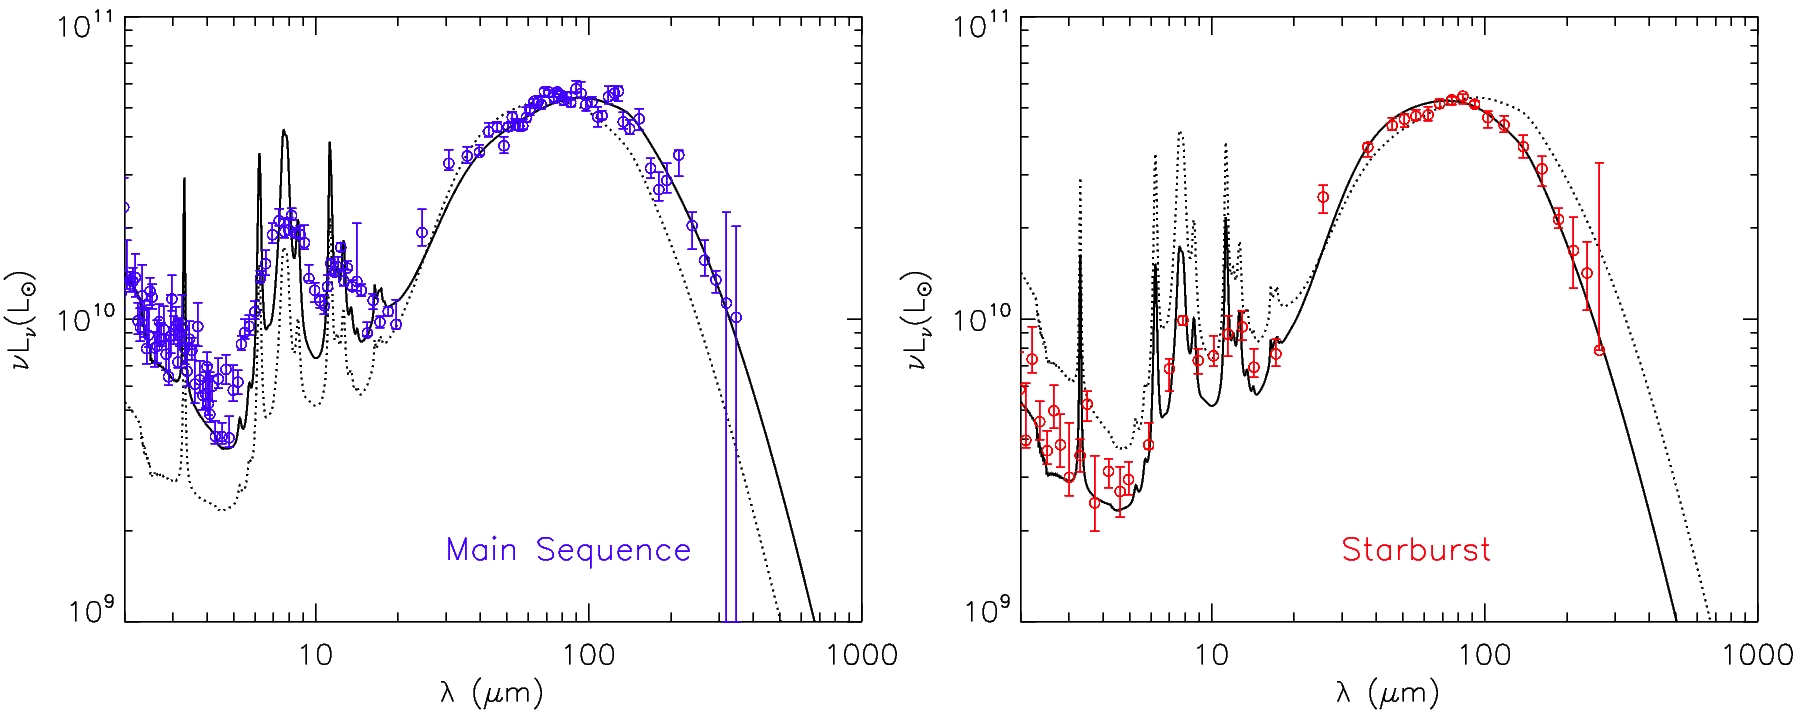 SEDs for 'main-sequence' and star-burst galaxies